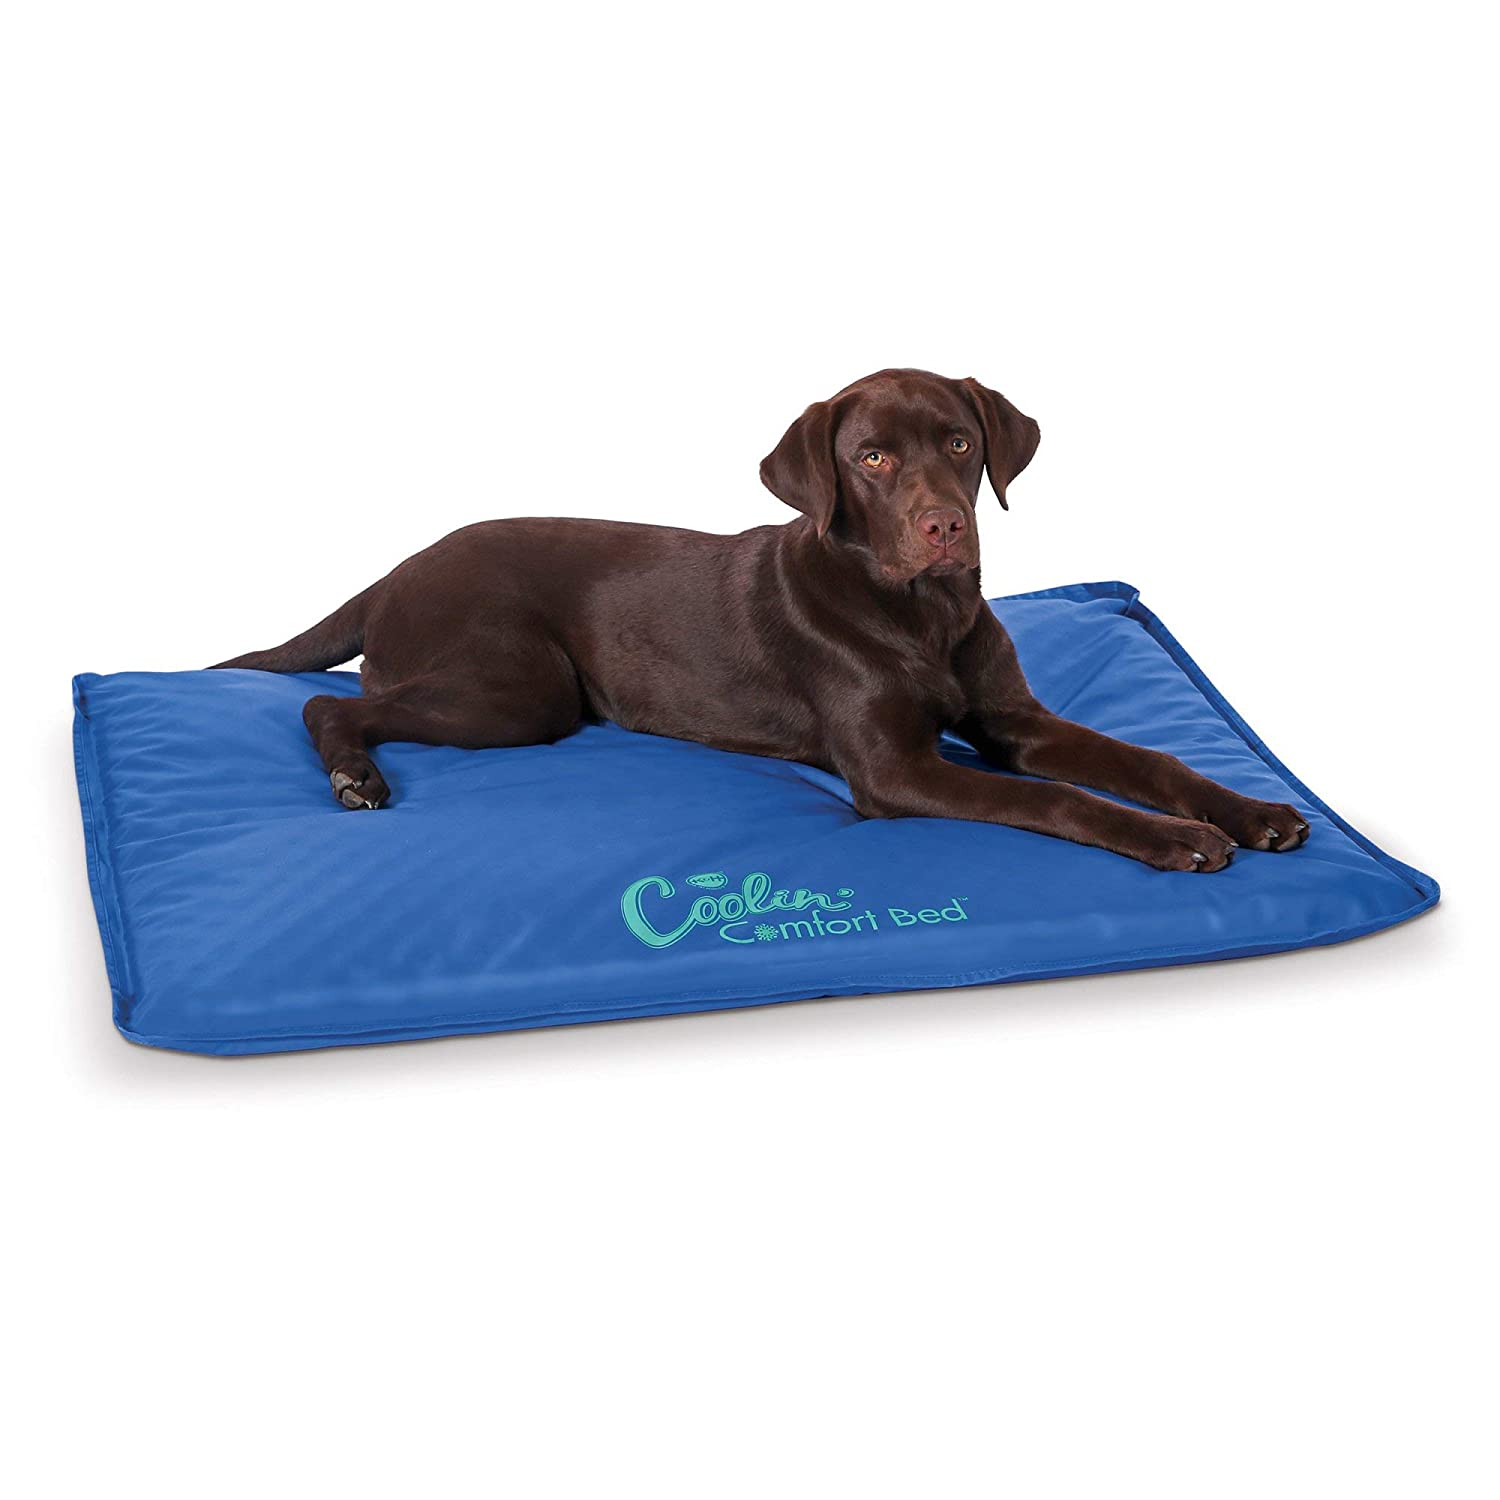 K&H Pet Products Coolin' Comfort Bed - Ultra Thick Cooling Orthopedic Pet Bed